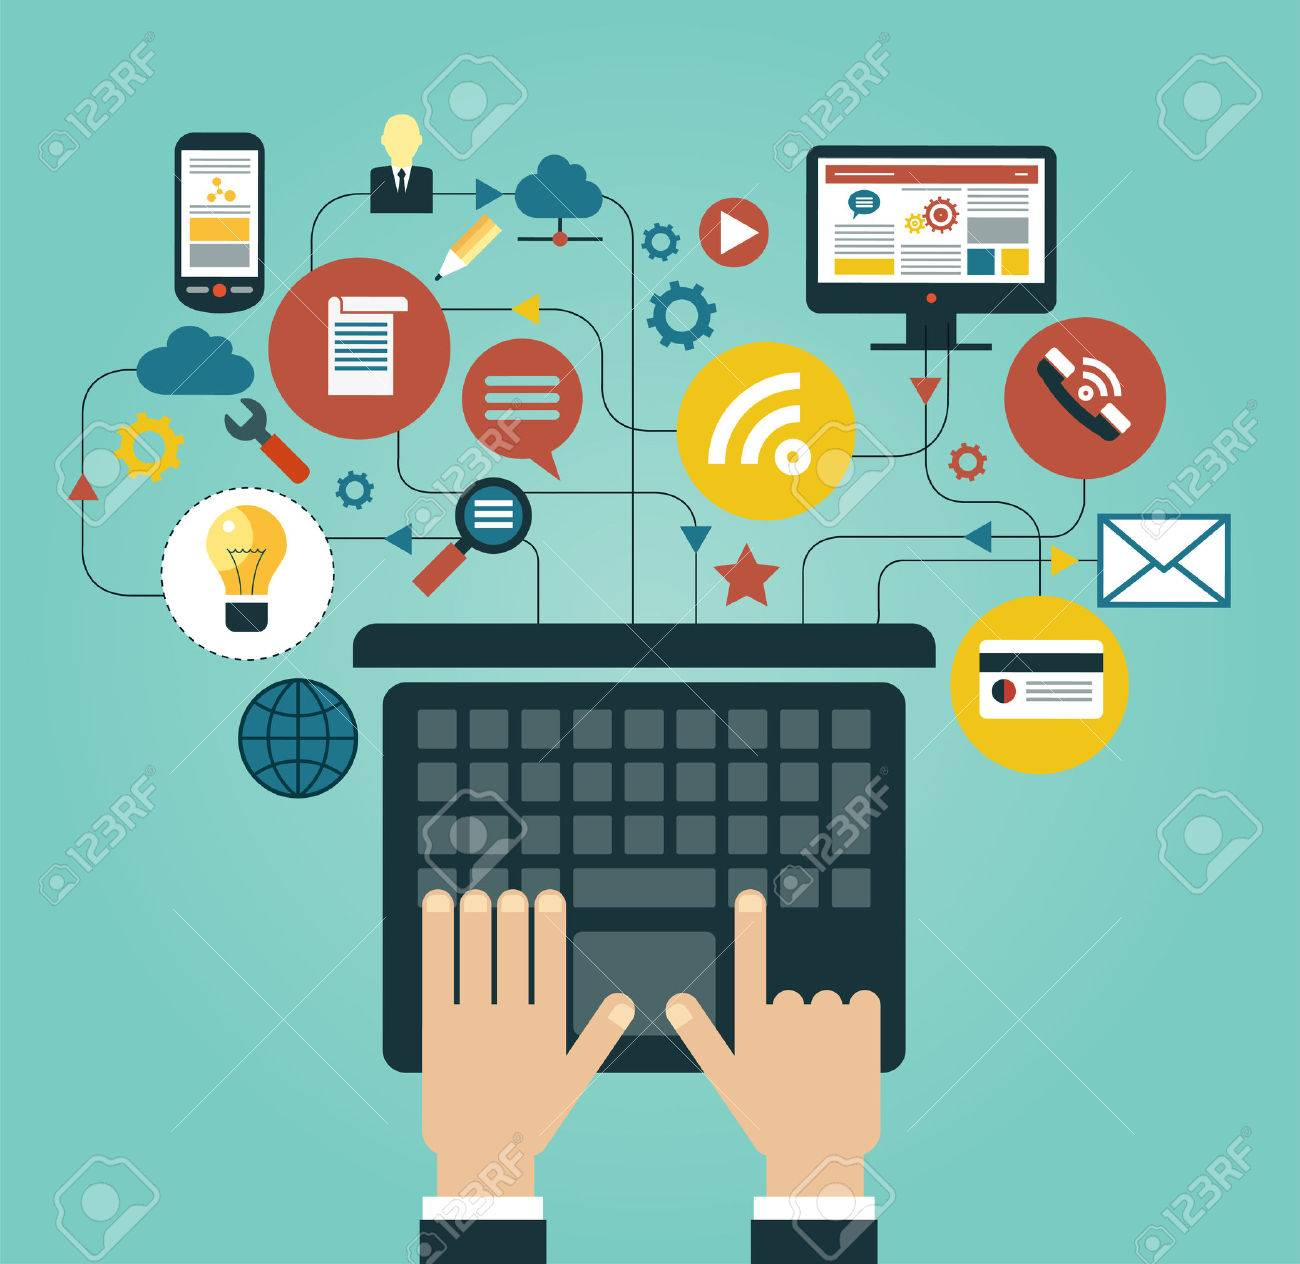 Communication human hand with a laptop surrounded by icons concept of communication in the